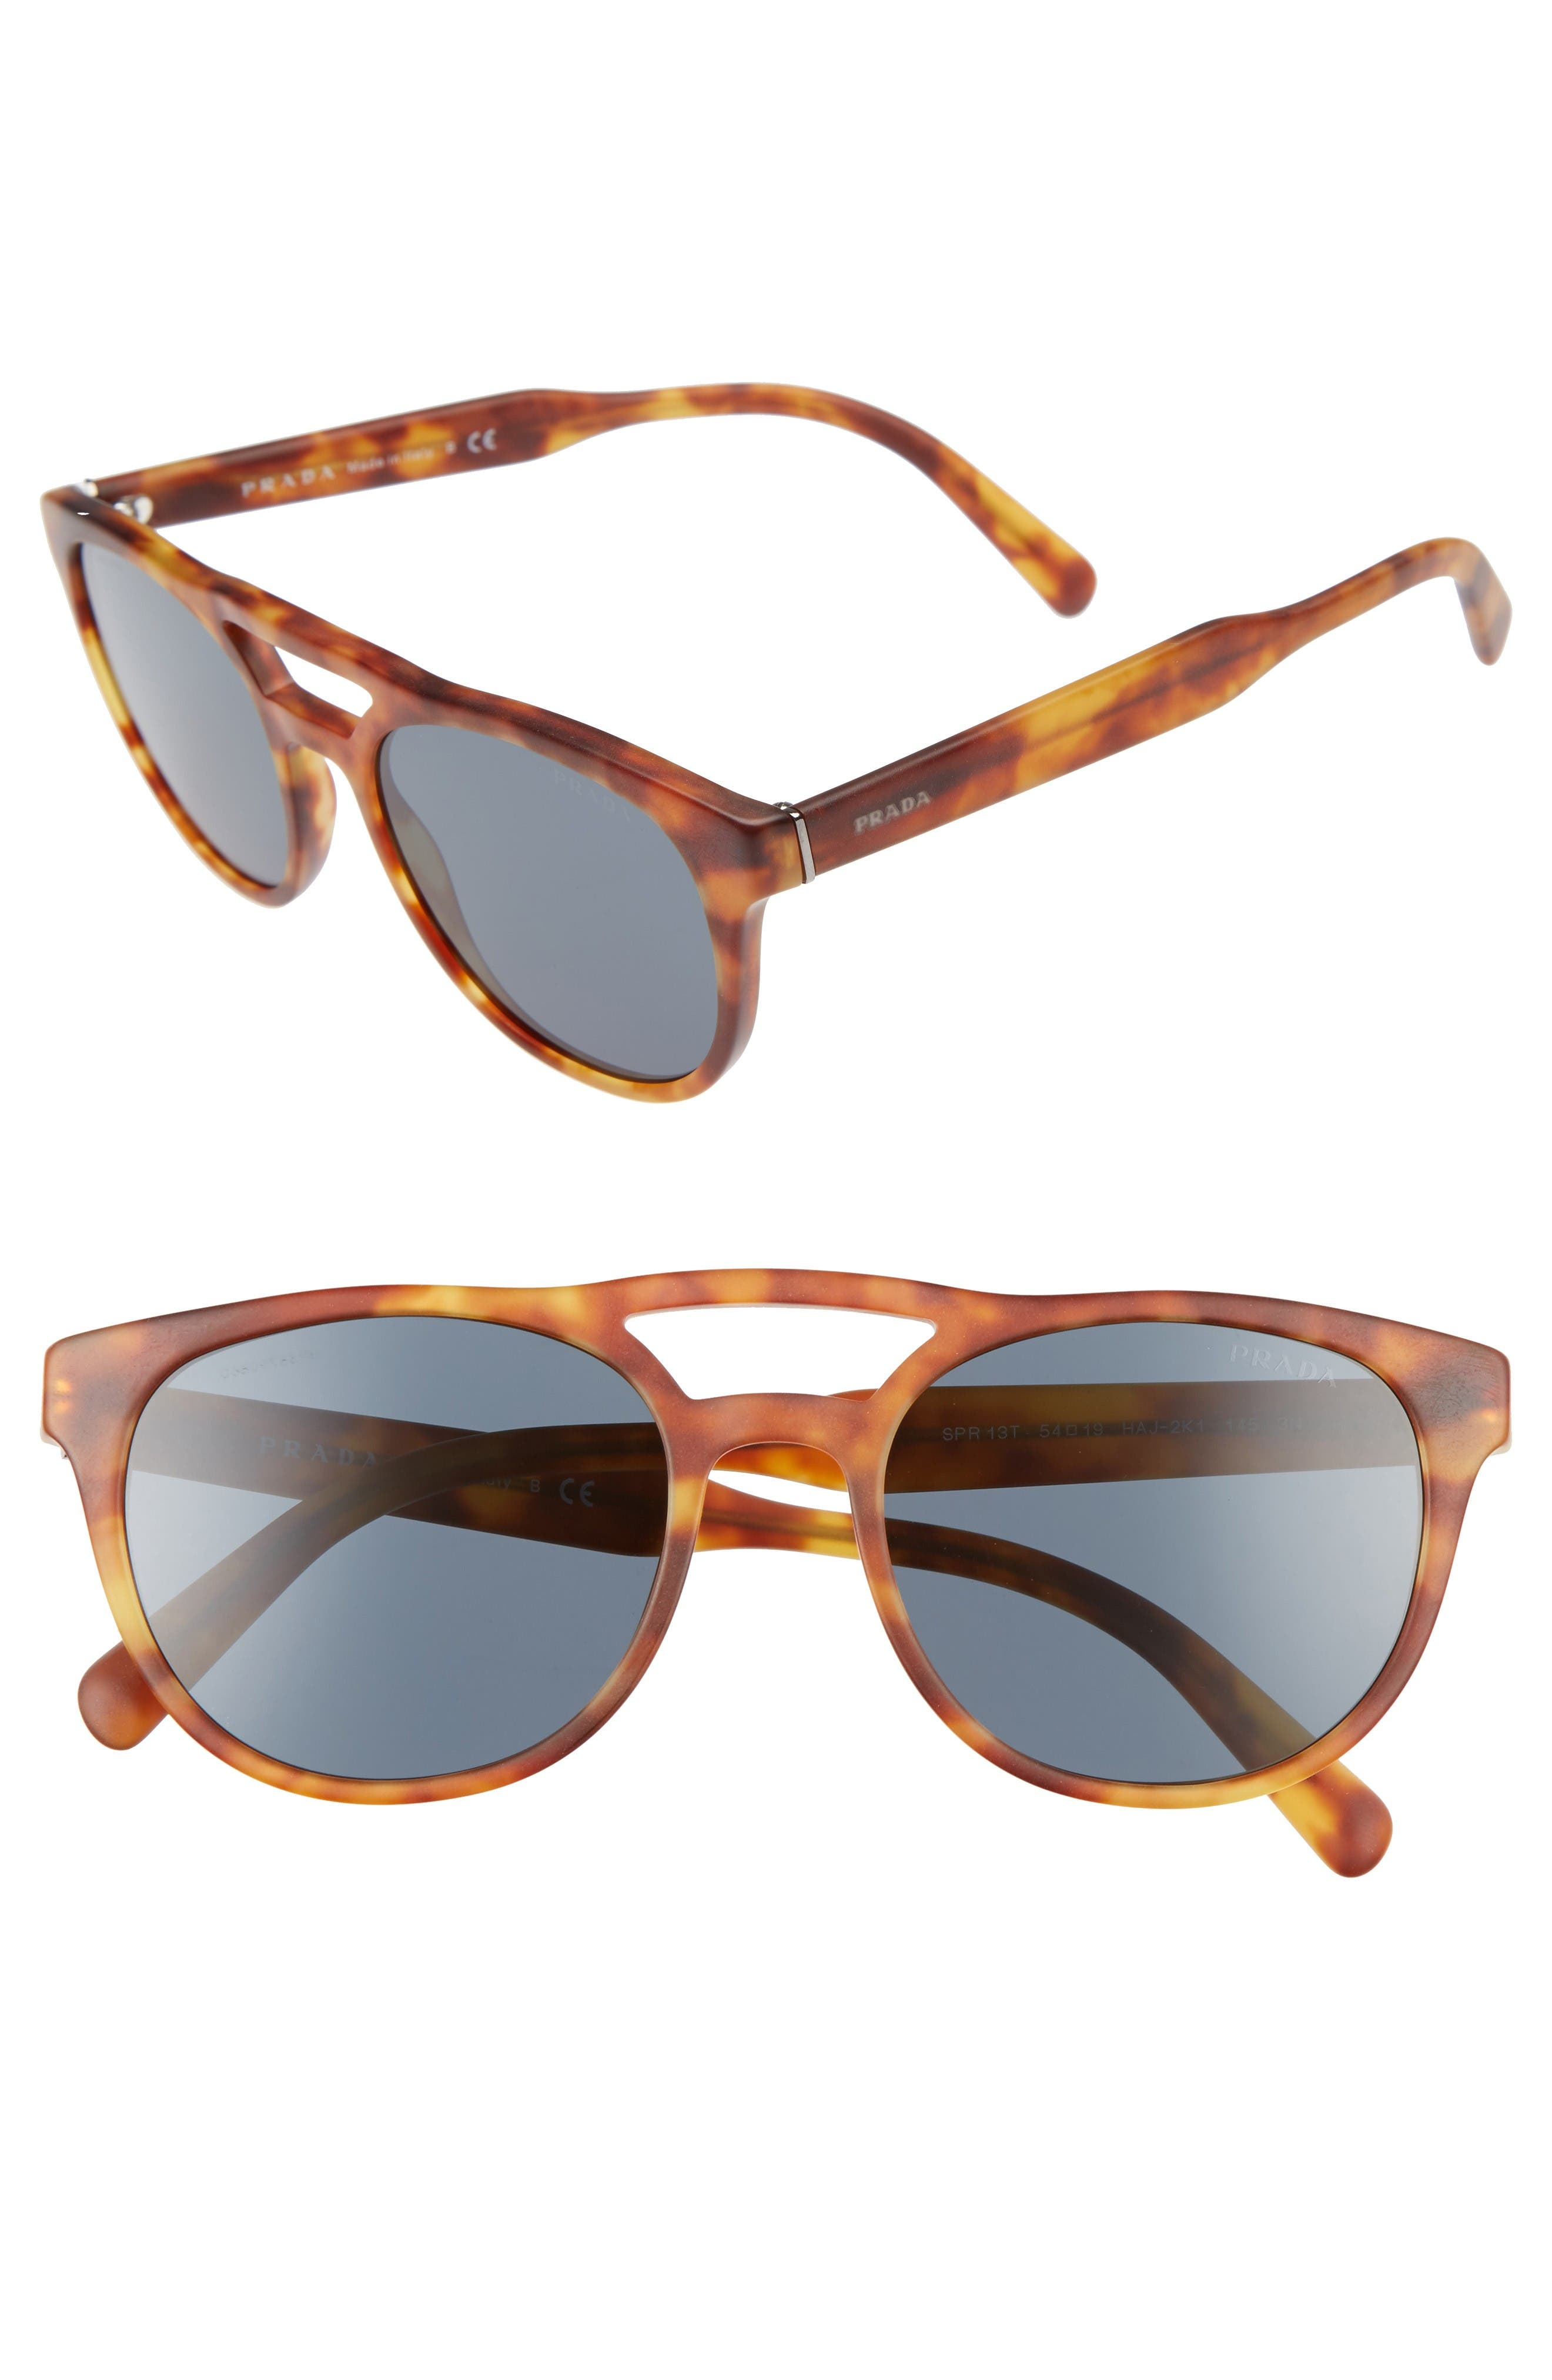 Main Image - Prada 54mm Square Sunglasses